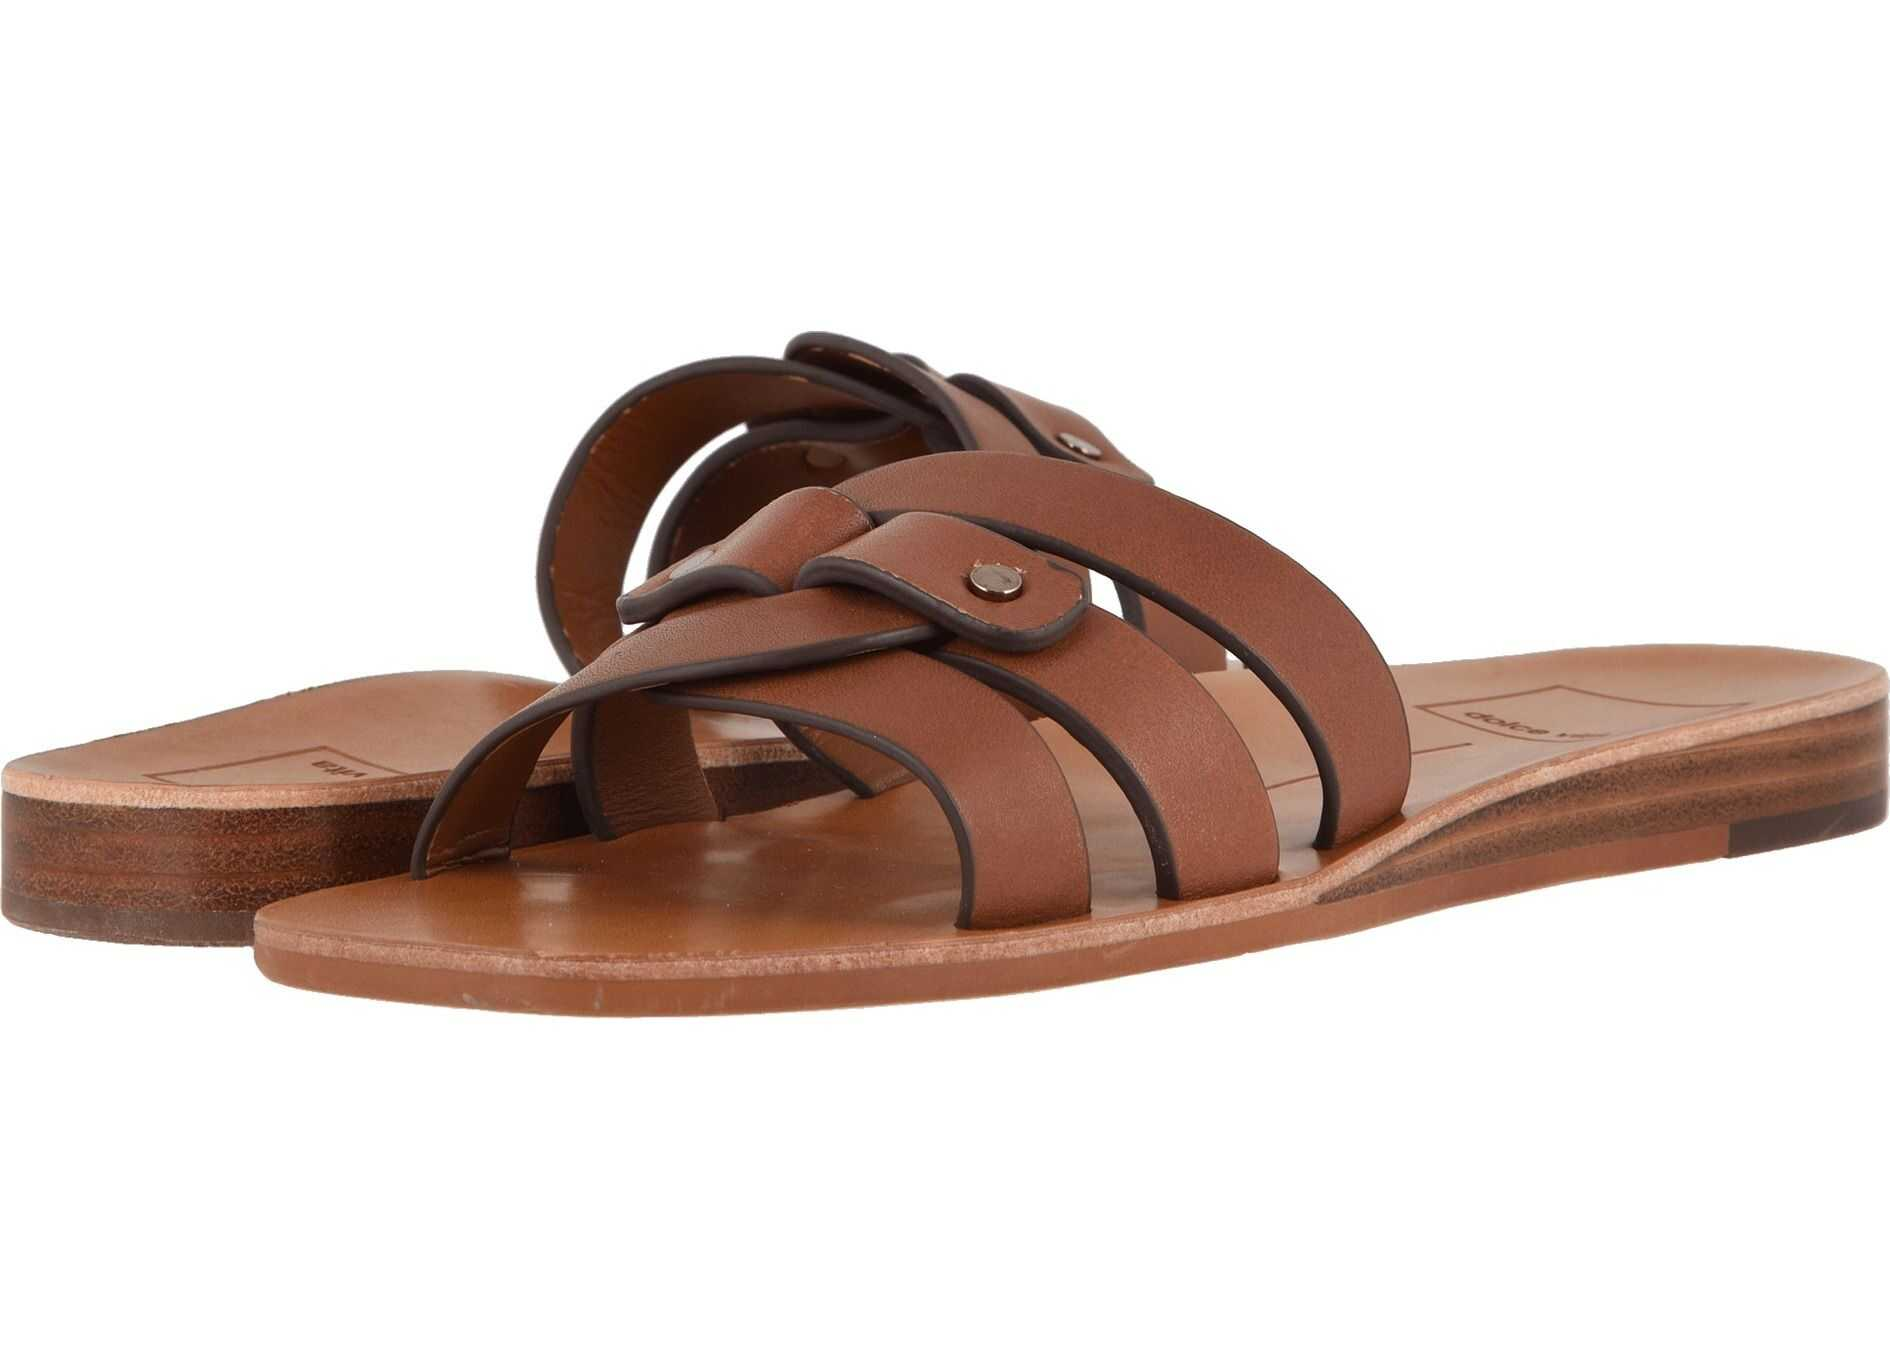 Dolce Vita Cait Brown Leather